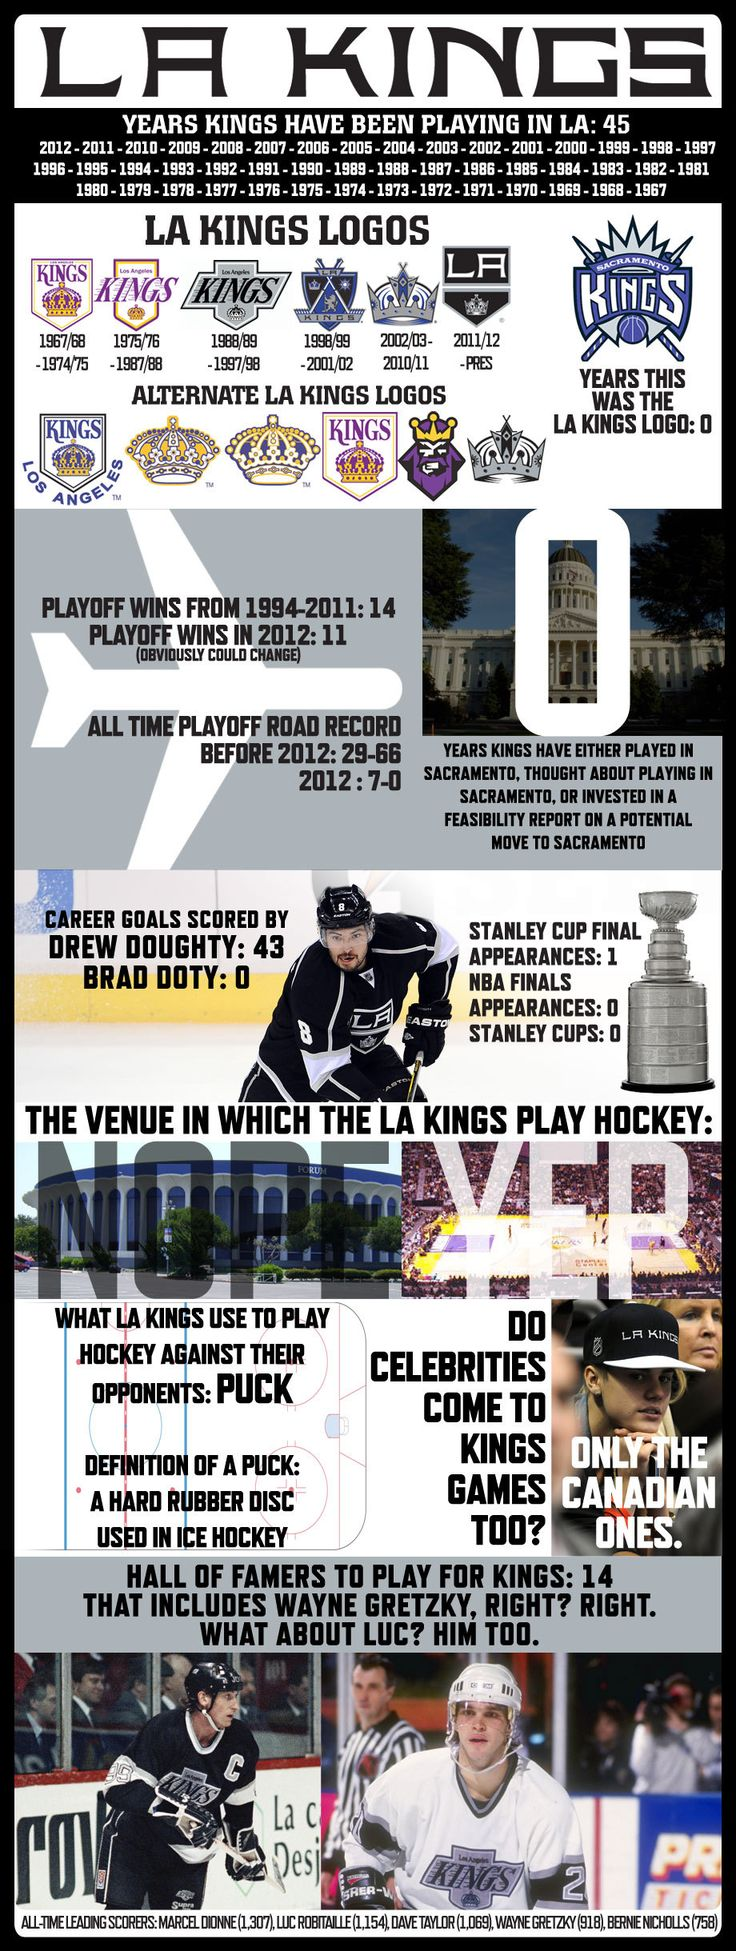 La Kings: An overview of the famous LA Kings hockey team spirit with some history.